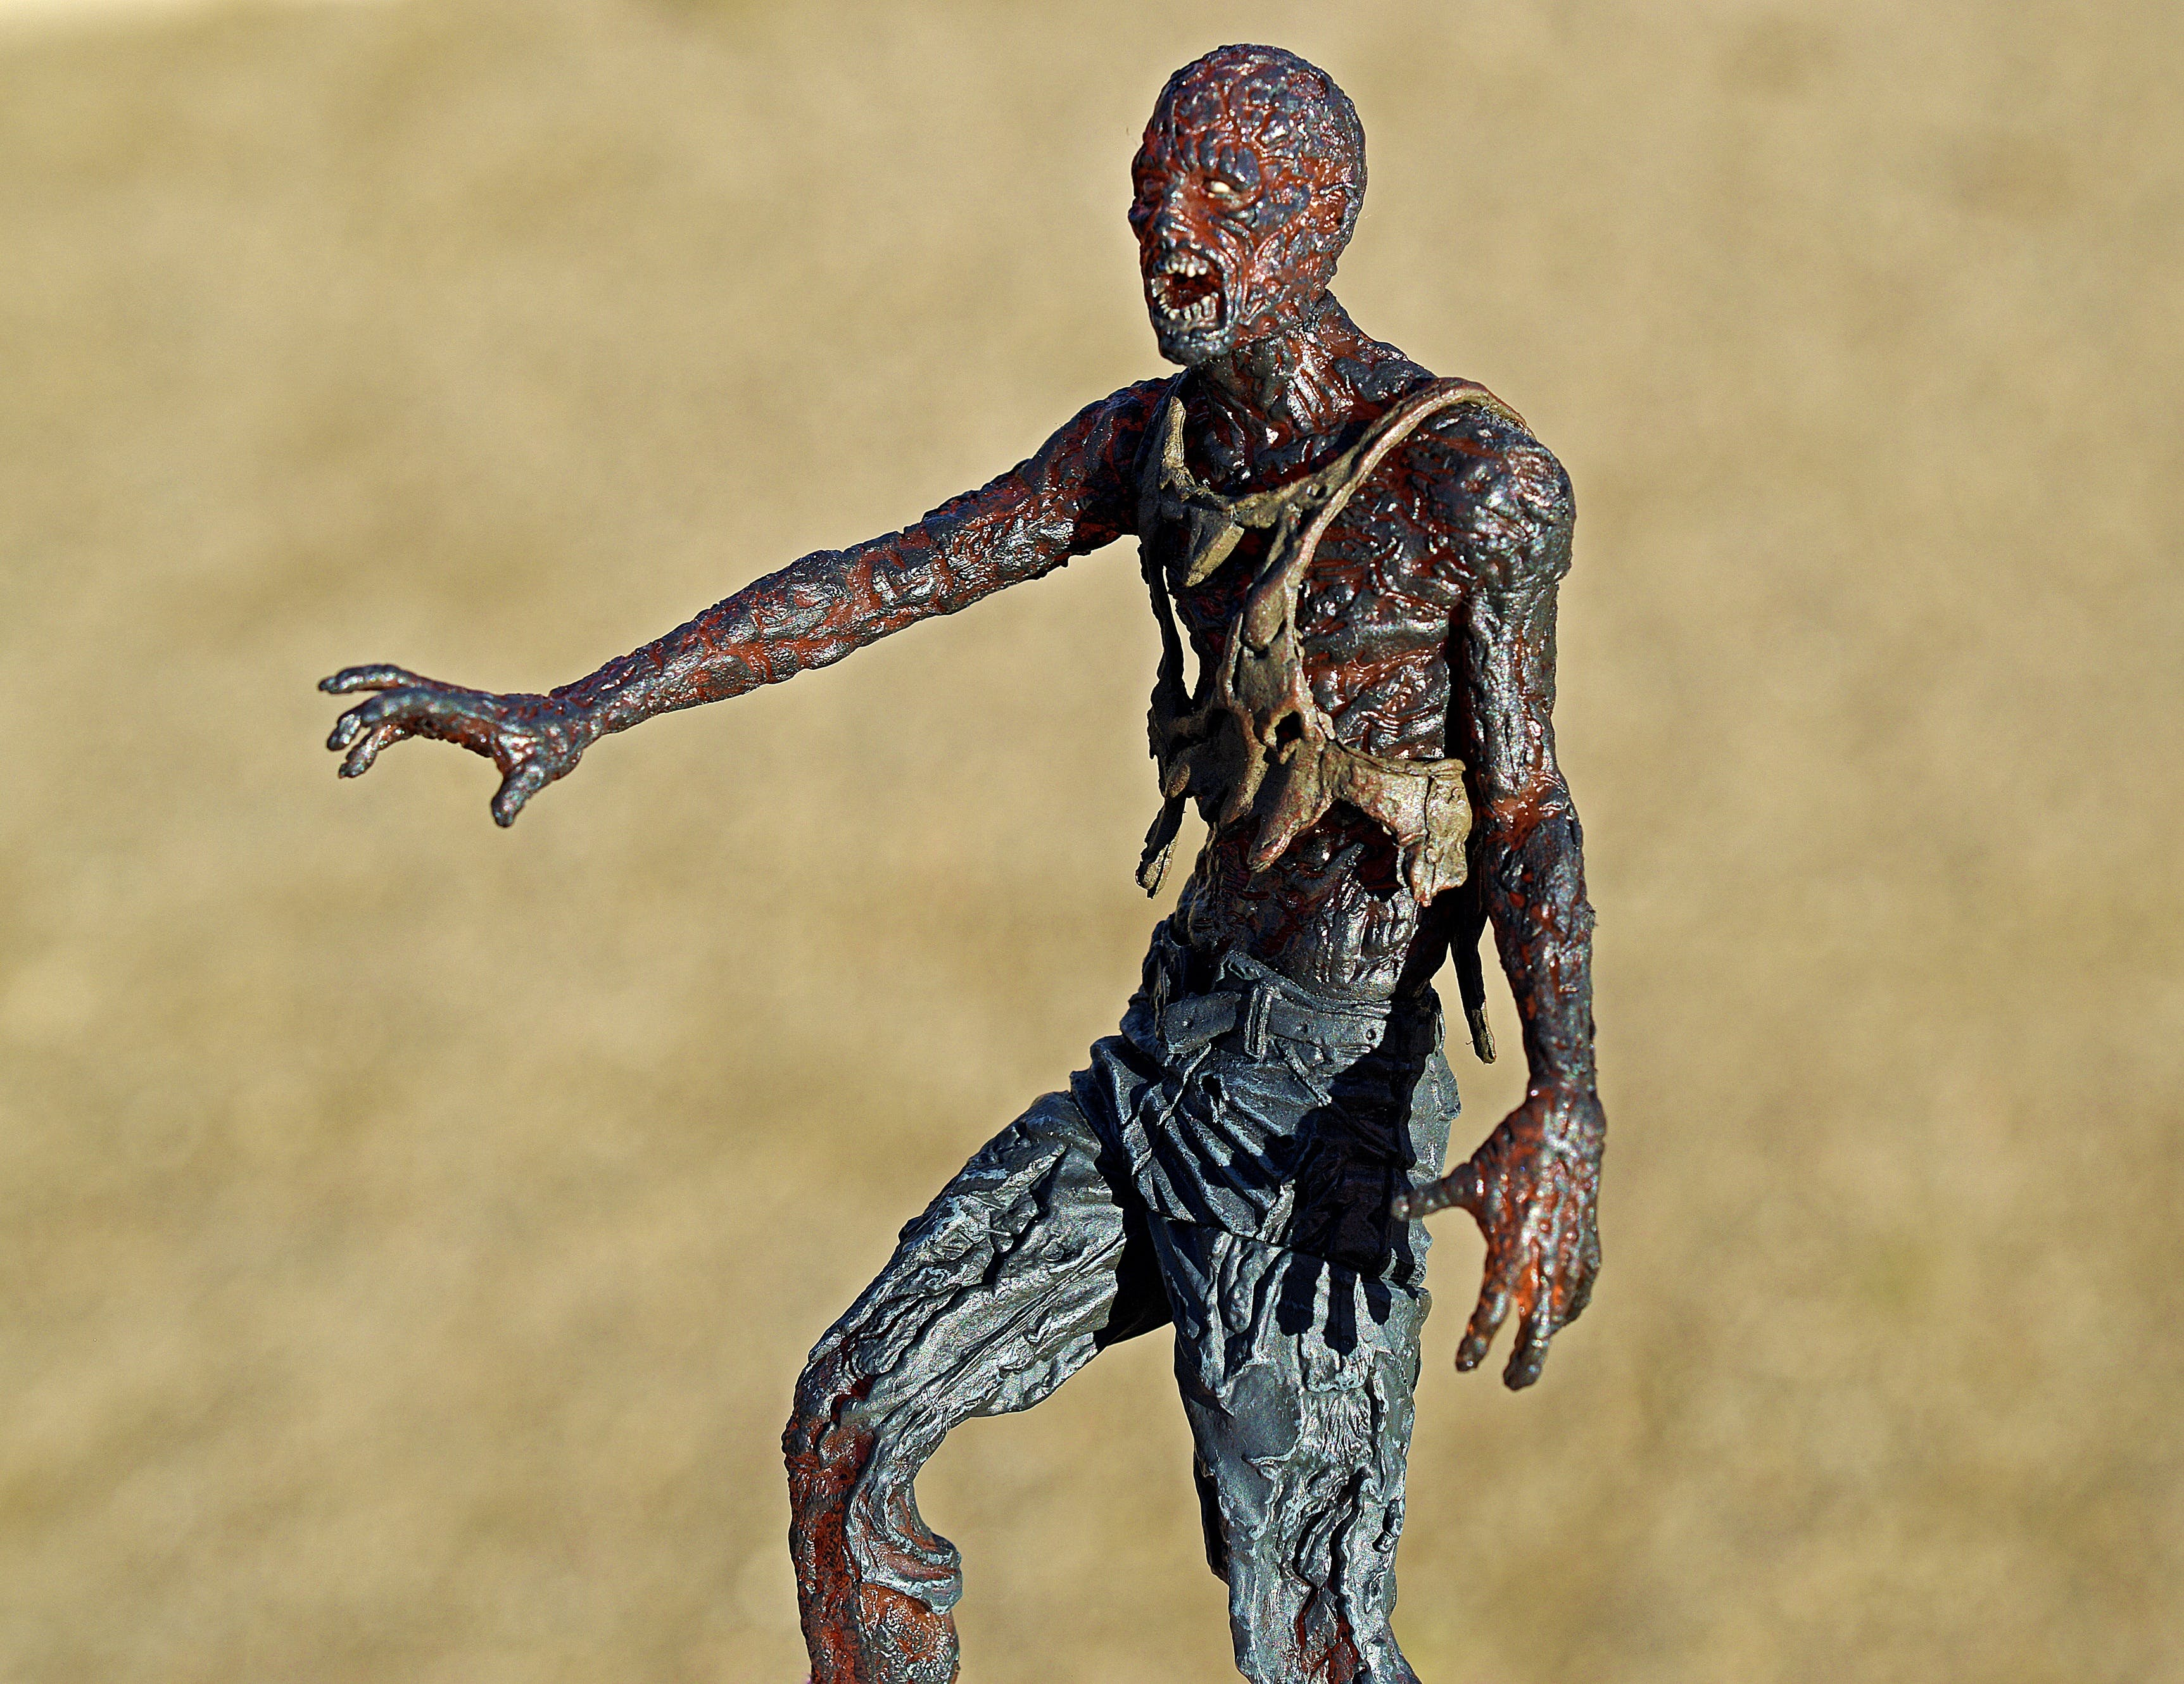 Free stock photo of monster, action figure, halloween, fear